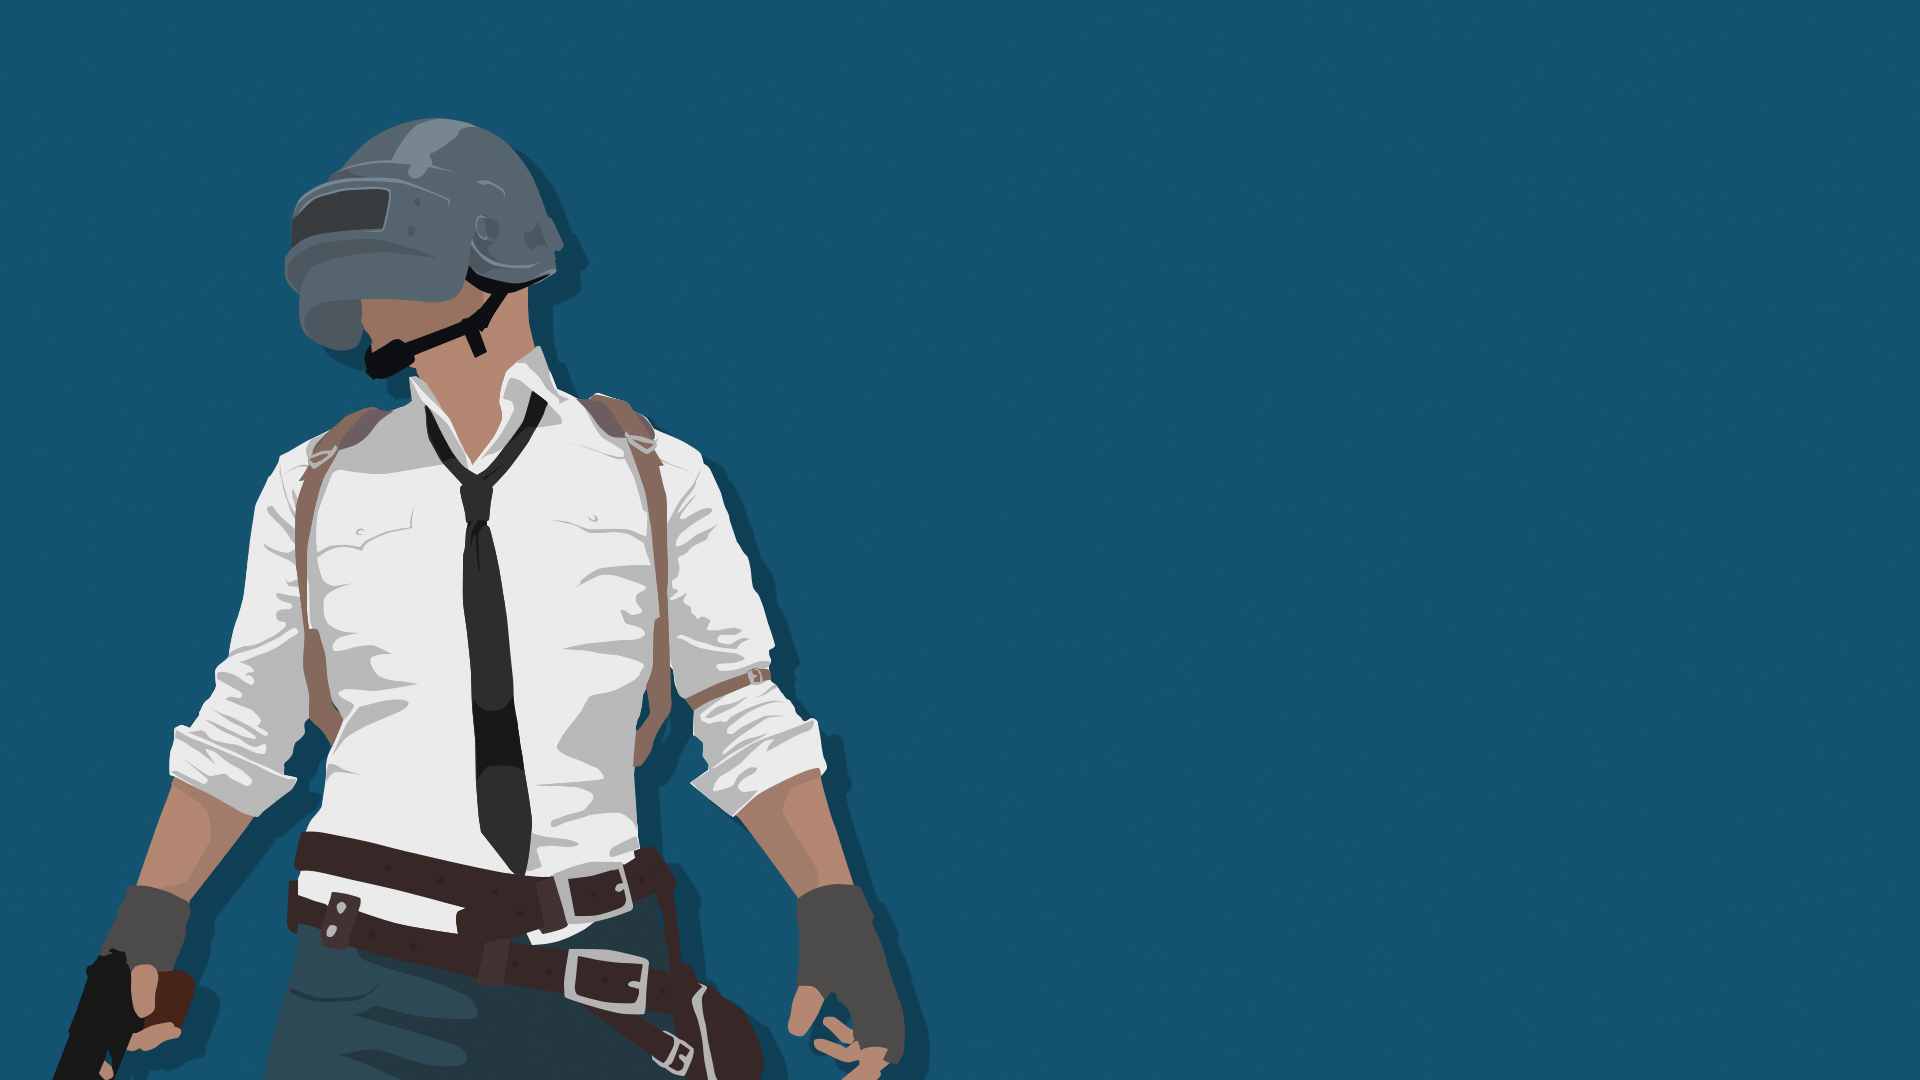 Playerunknown S Battlegrounds Animated Wallpaper: PlayerUnknown's Battlegrounds Wallpapers